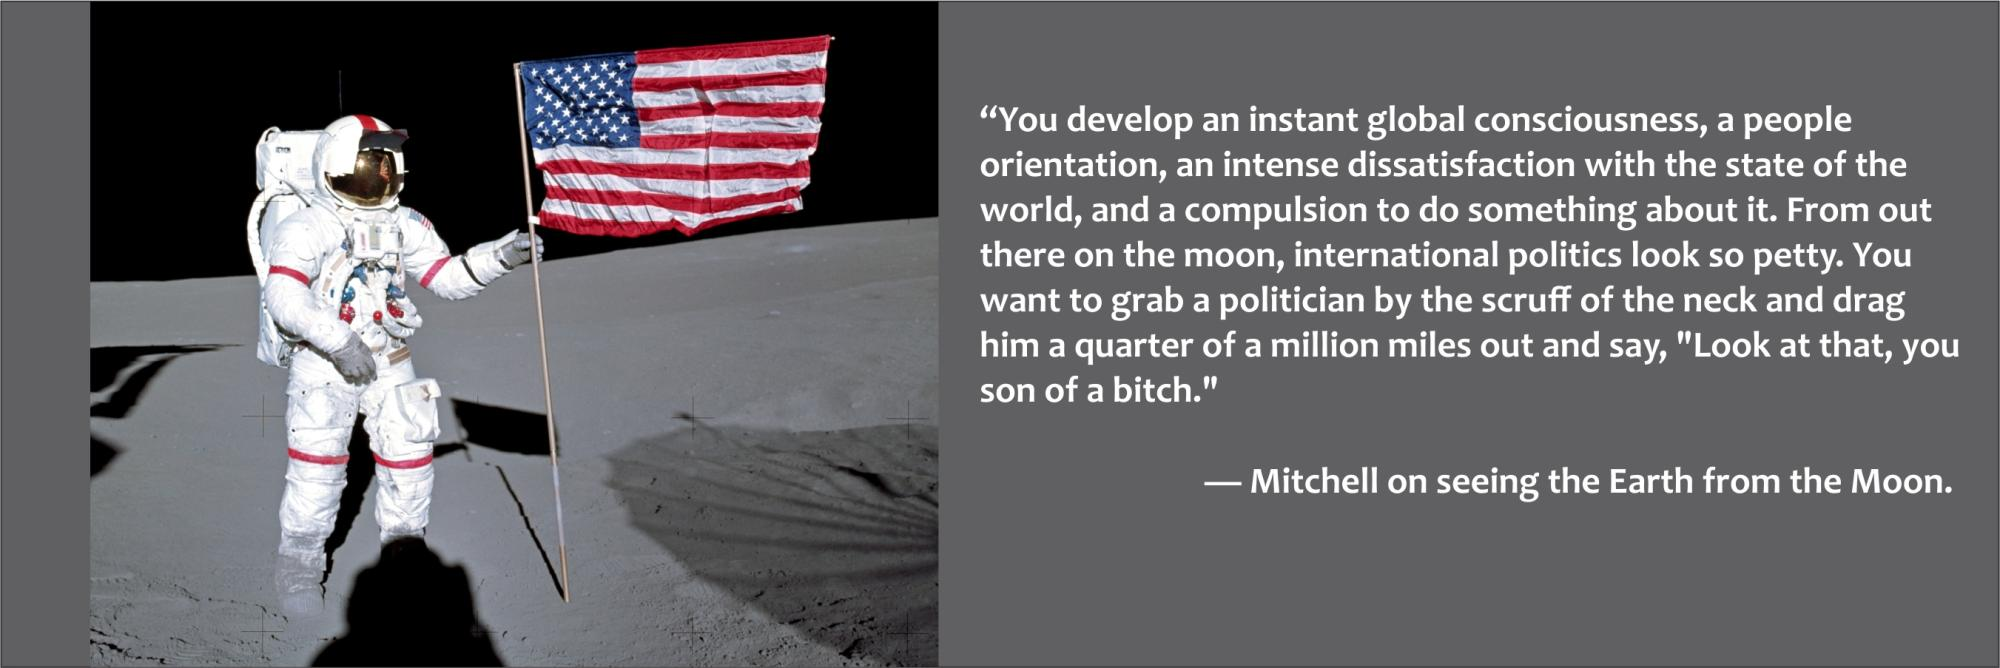 apollo14moonflag.jpg